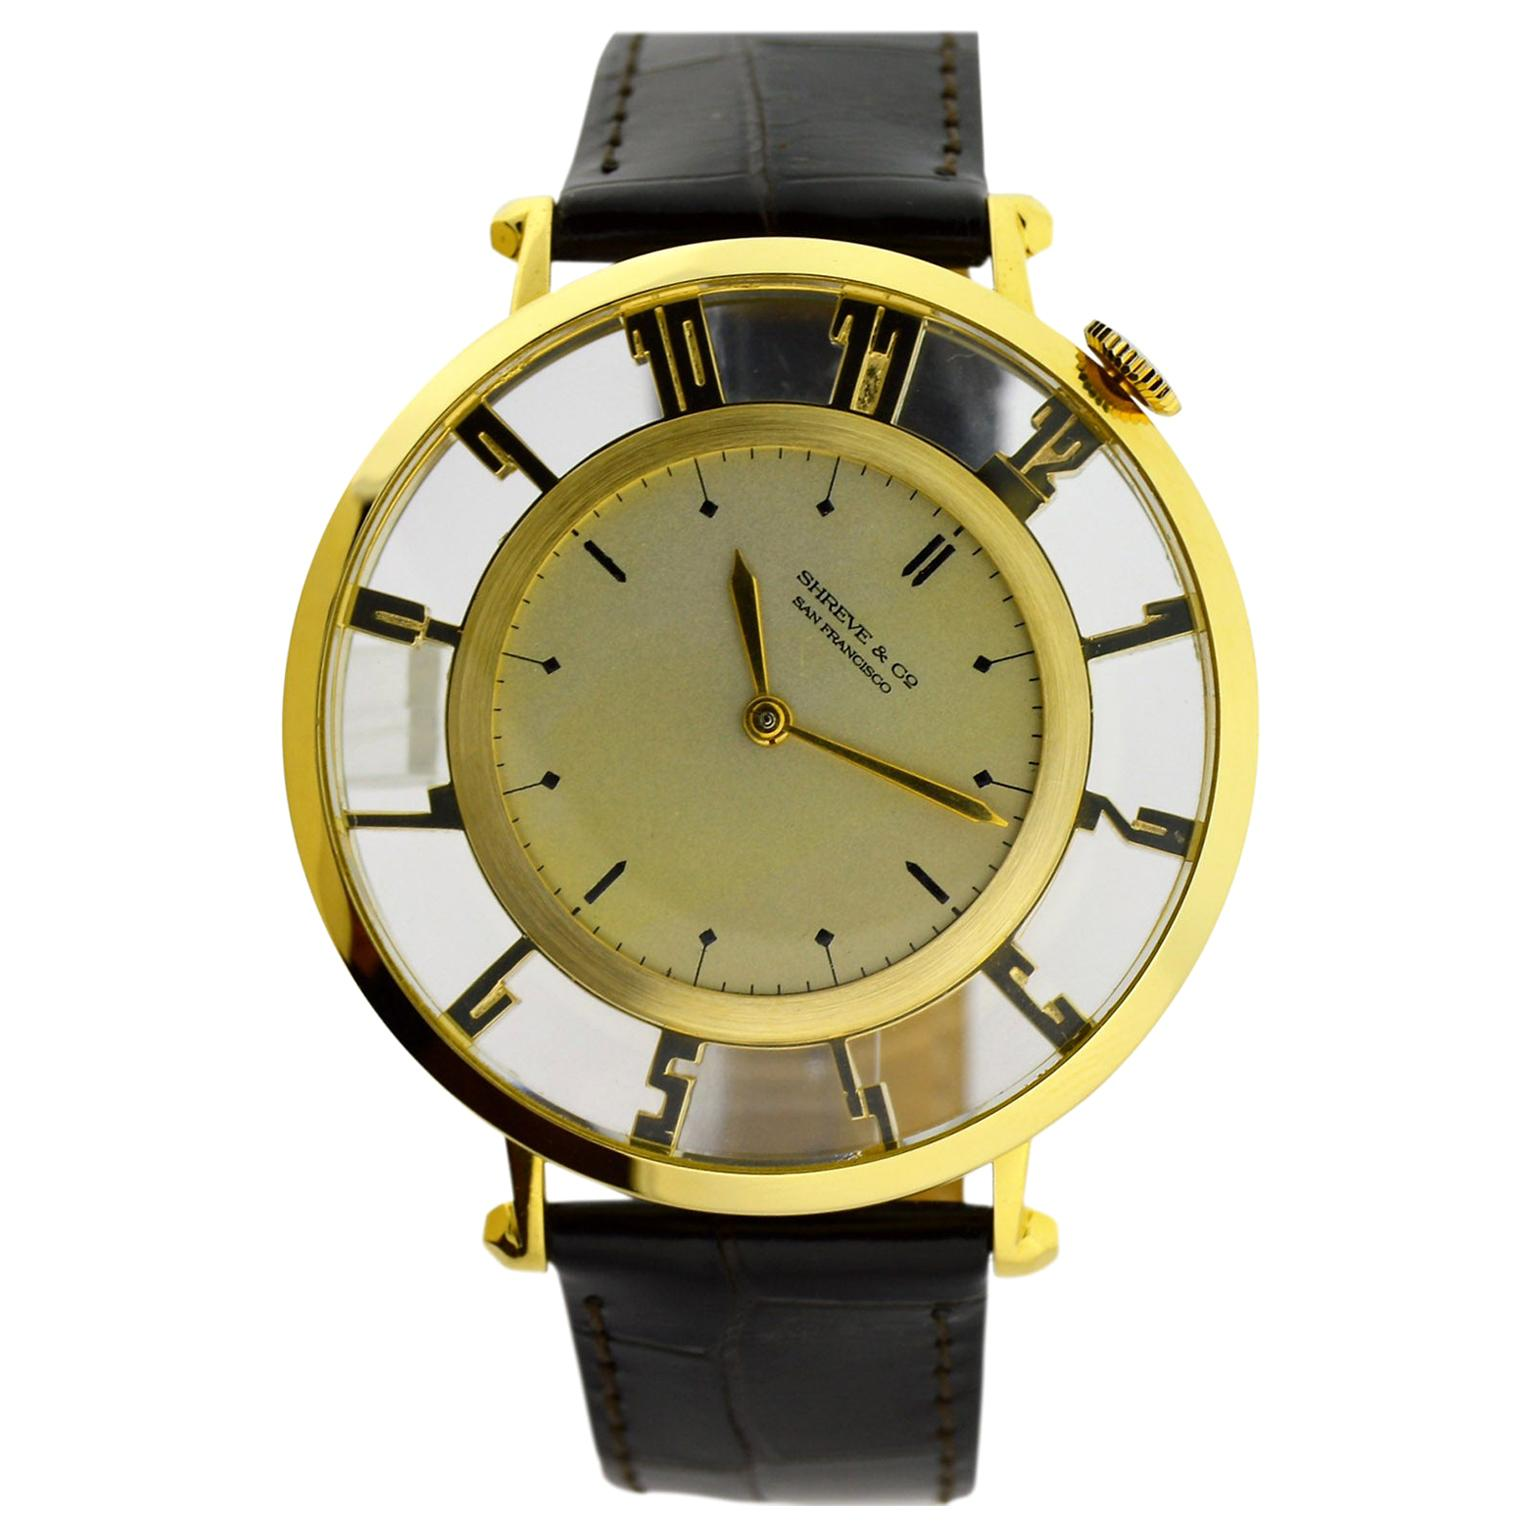 Waltham for Shreve & Co. Yellow Gold Art Deco Pocket Wristwatch from 1935